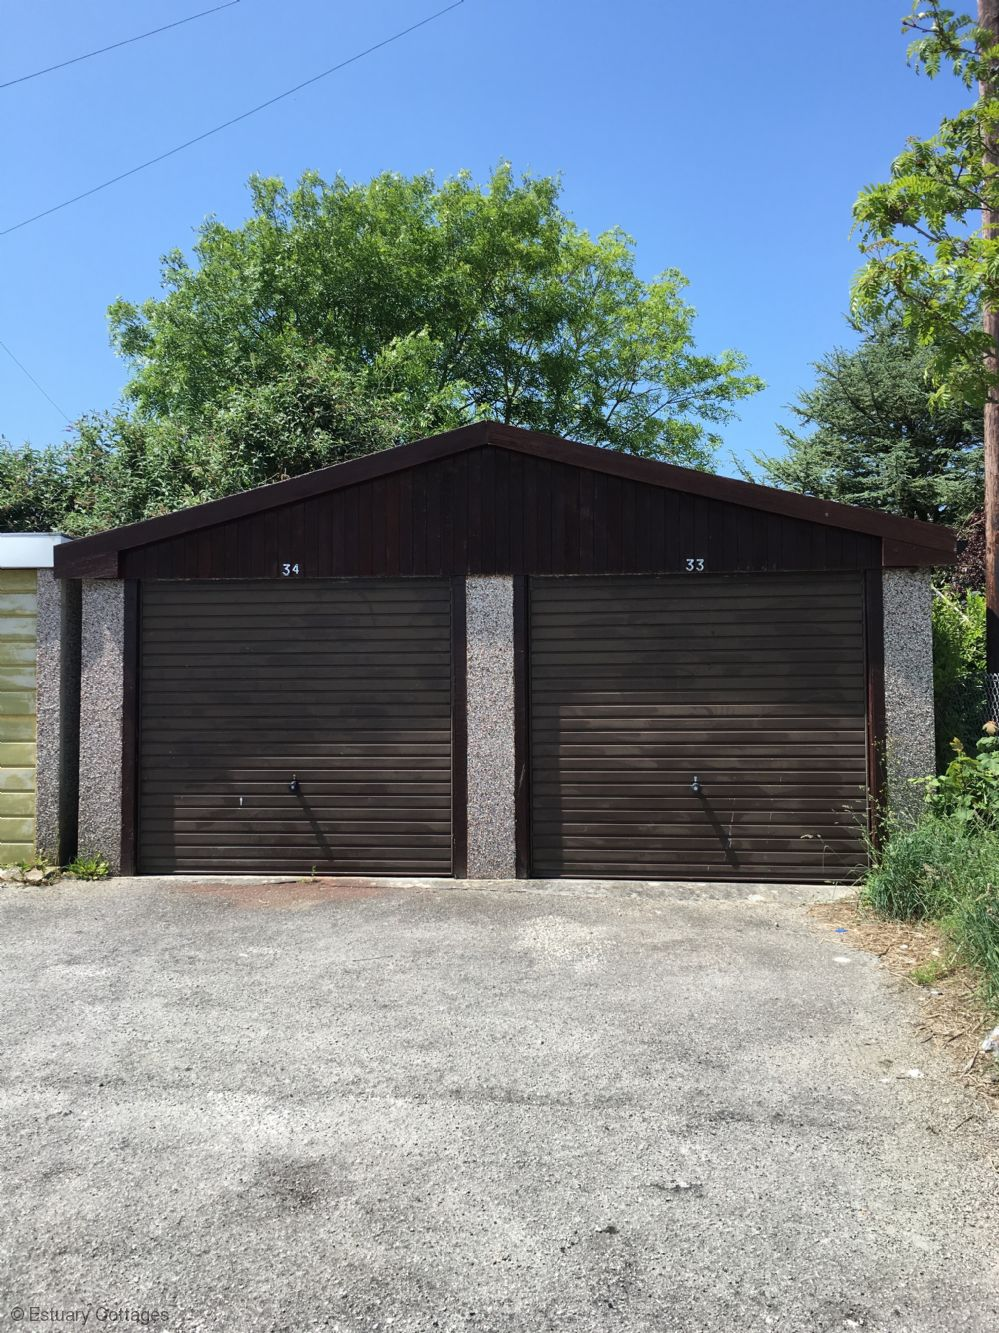 Garage for property